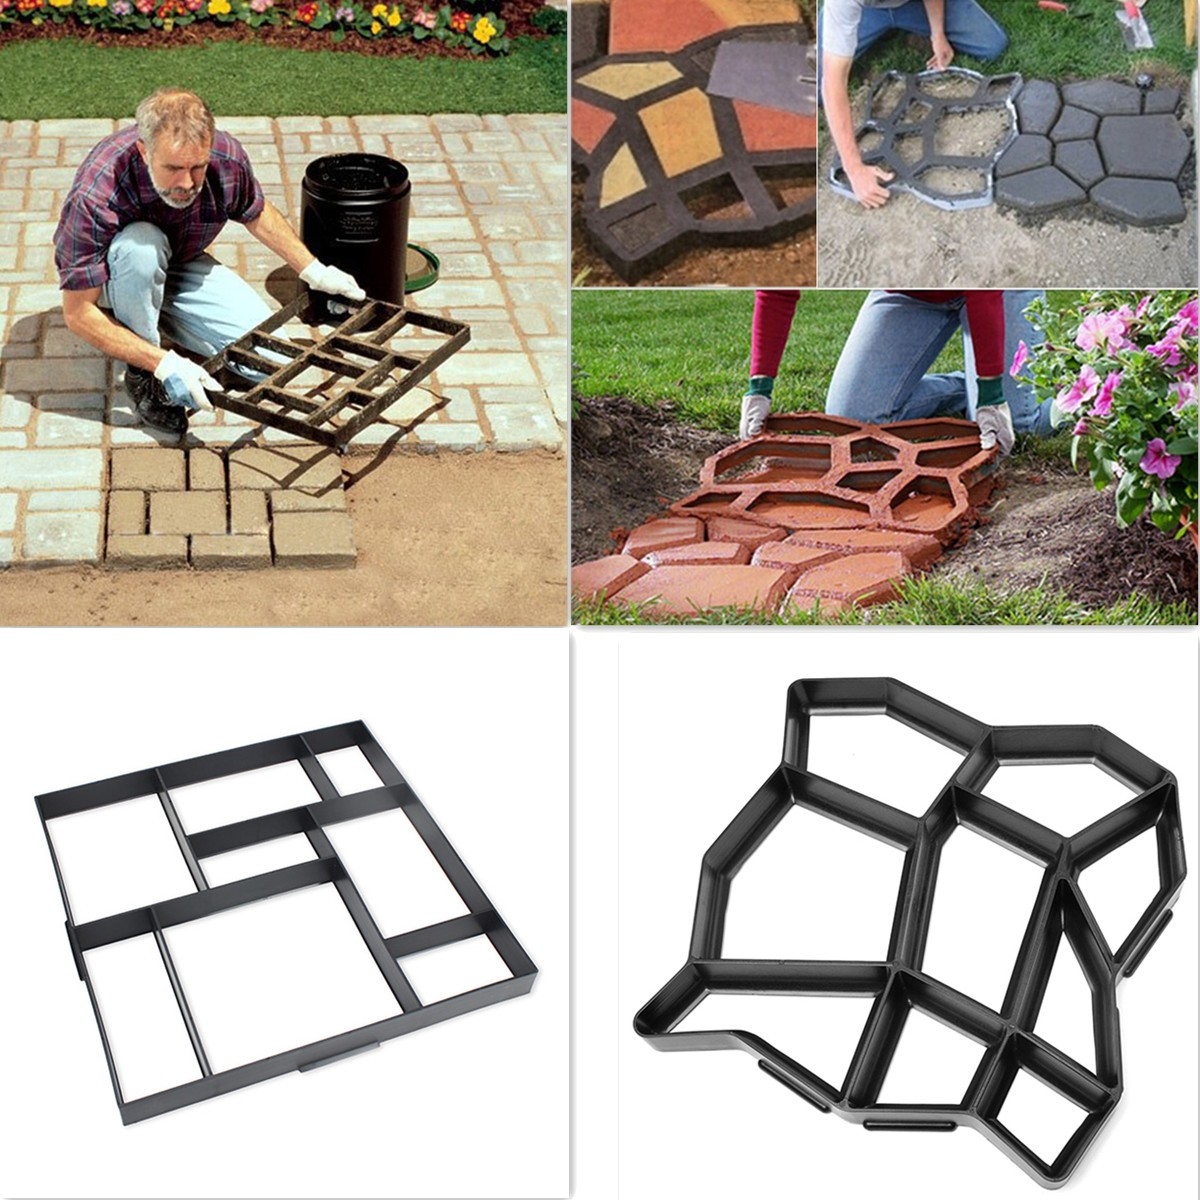 Meigar Stepping Walk Path Maker Mold,Garden Paving Pavement Concrete Mold DIY Pathmate Stone Mold Outdoor Patio Decorative Stepping Stone Mould Pavement Paver